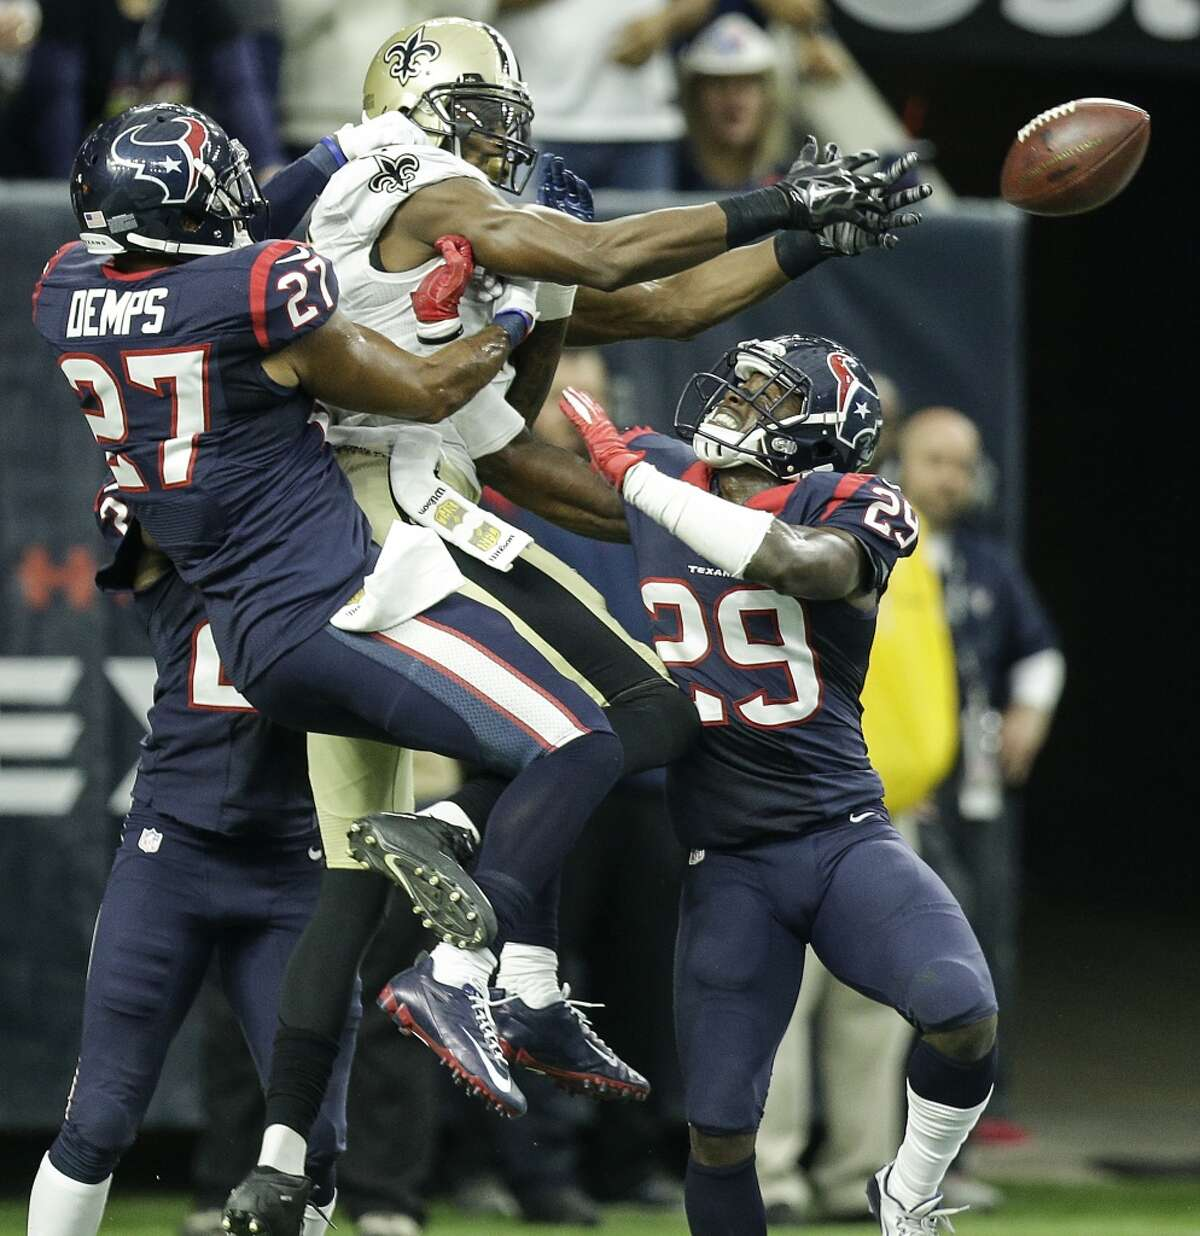 Houston Texans defensive backs Quintin Demps (27) and Andre Hal (29) break up a pass in the end zone intended for New Orleans Saints wide receiver Brandon Coleman (16) during the fourth quarter of an NFL football game at NRG Stadium on Sunday, Nov. 29, 2015, in Houston. ( Brett Coomer / Houston Chronicle )